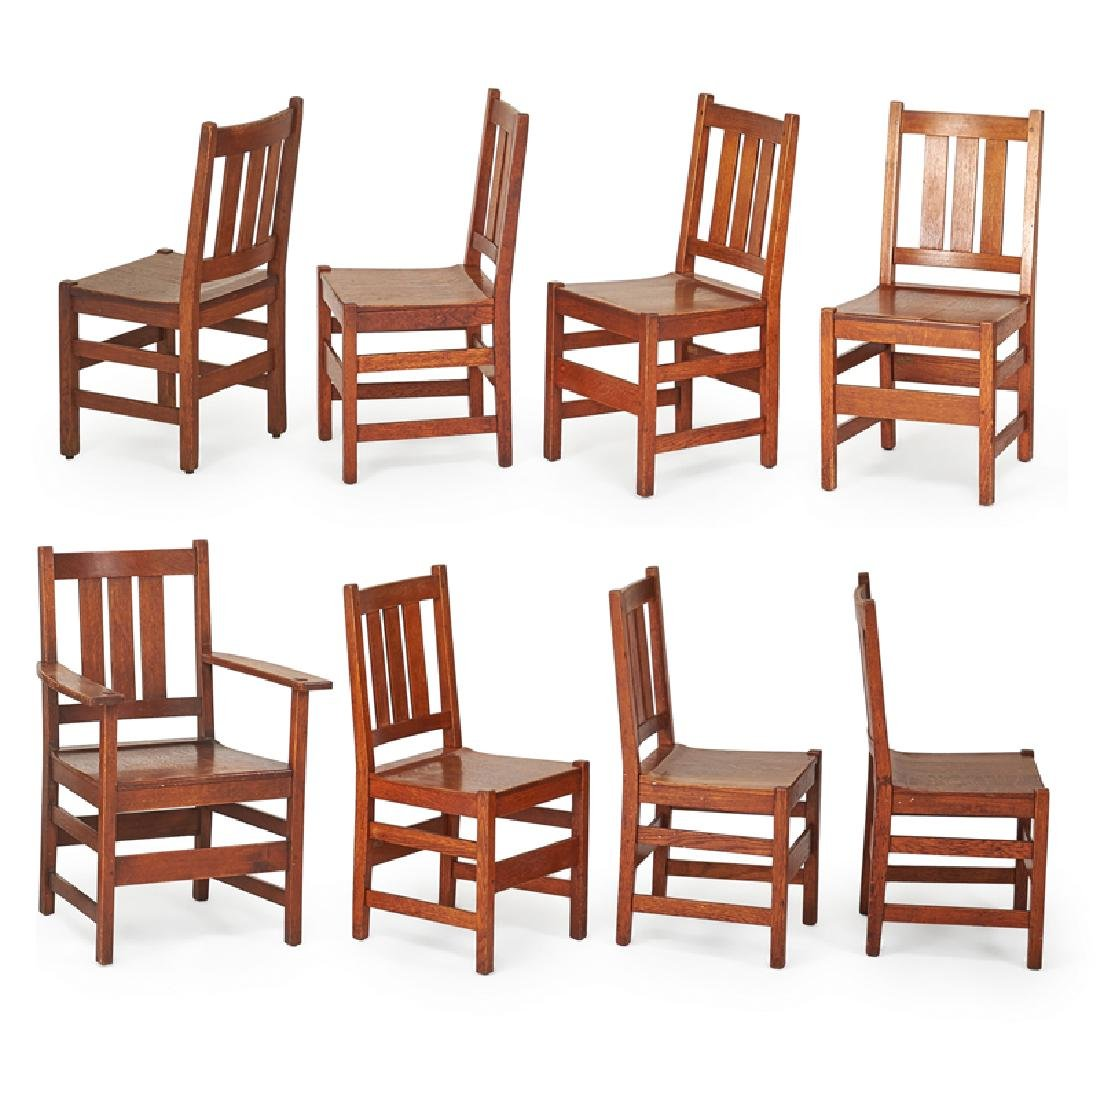 L. & J.G. STICKLEY Set of eight dining chairs - 2